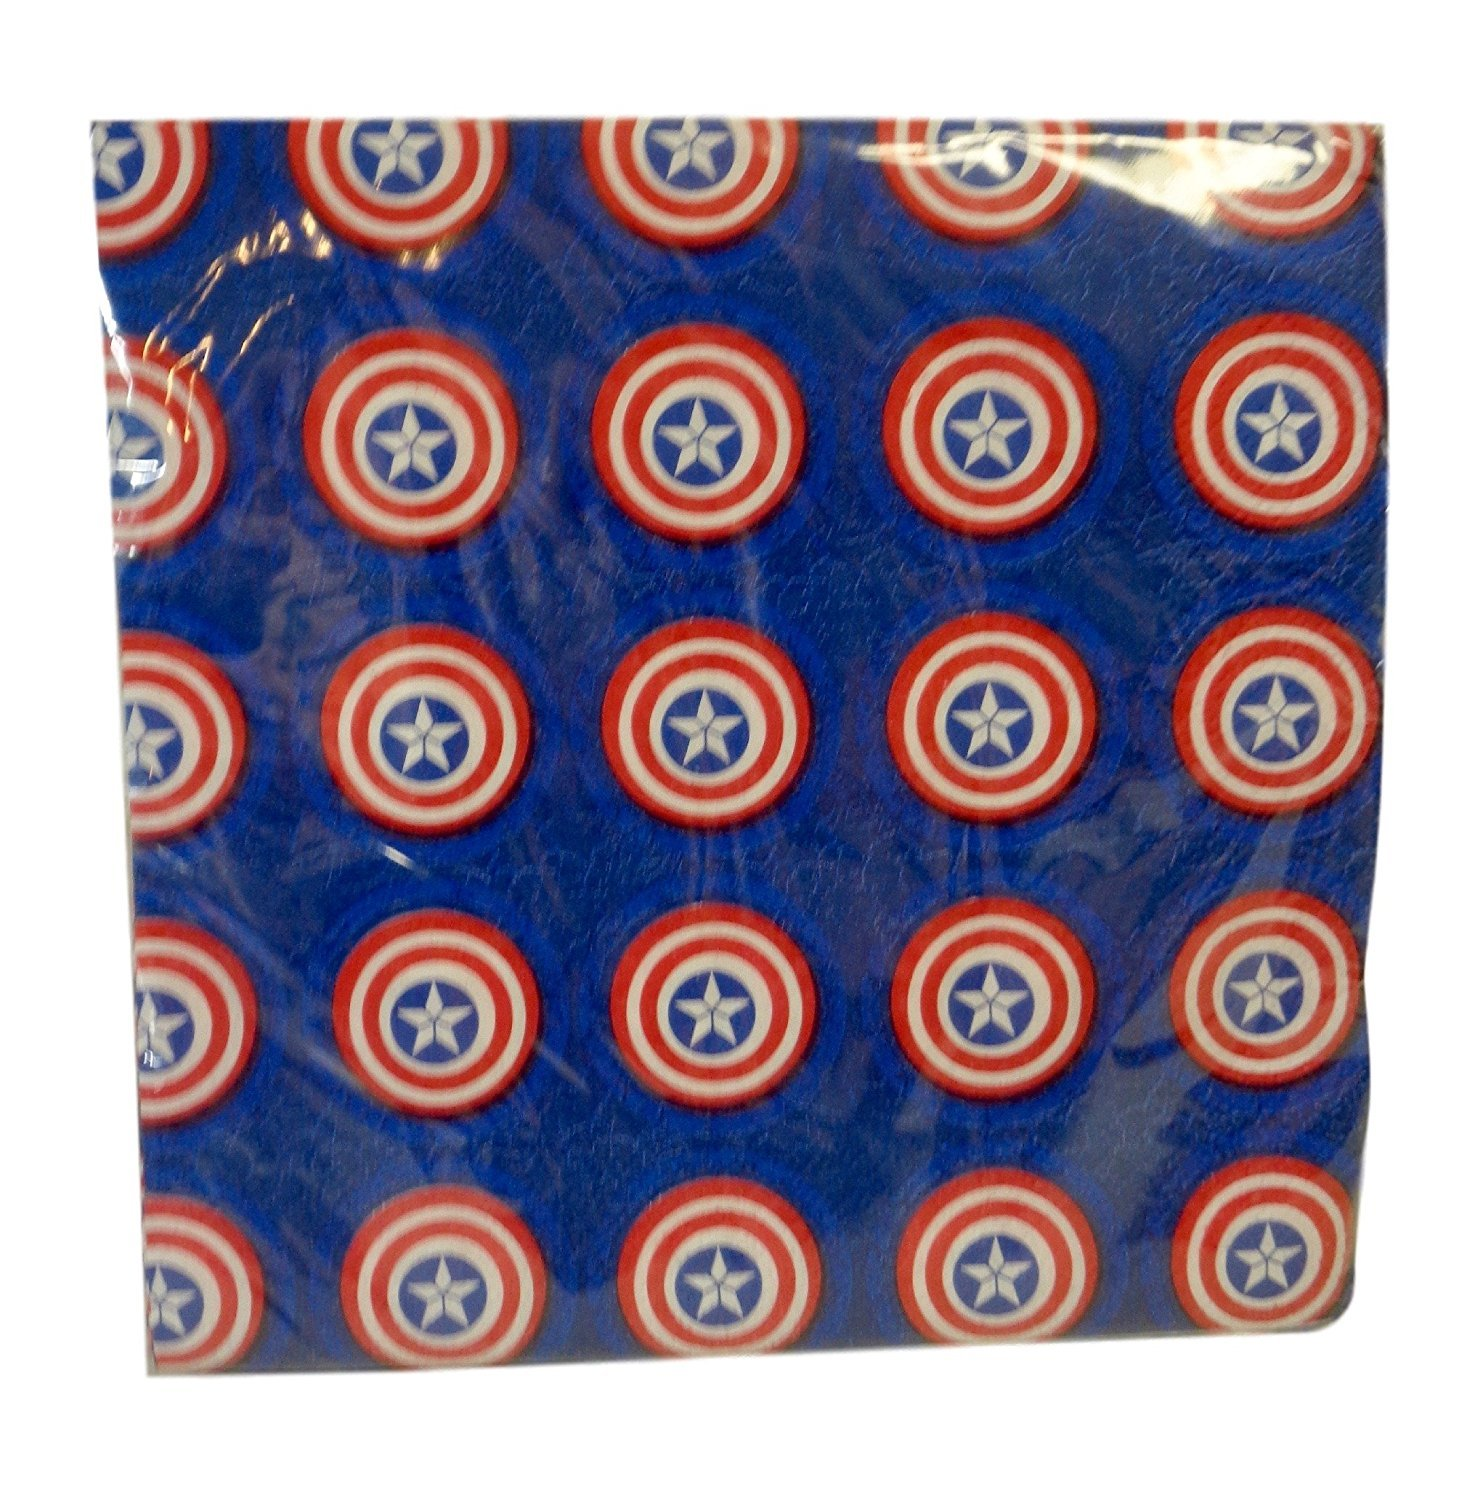 Marvel AVENGERS Captain America Party Luncheon Napkins 2 Ply, 13 Inches SQ (32 Per Pack)